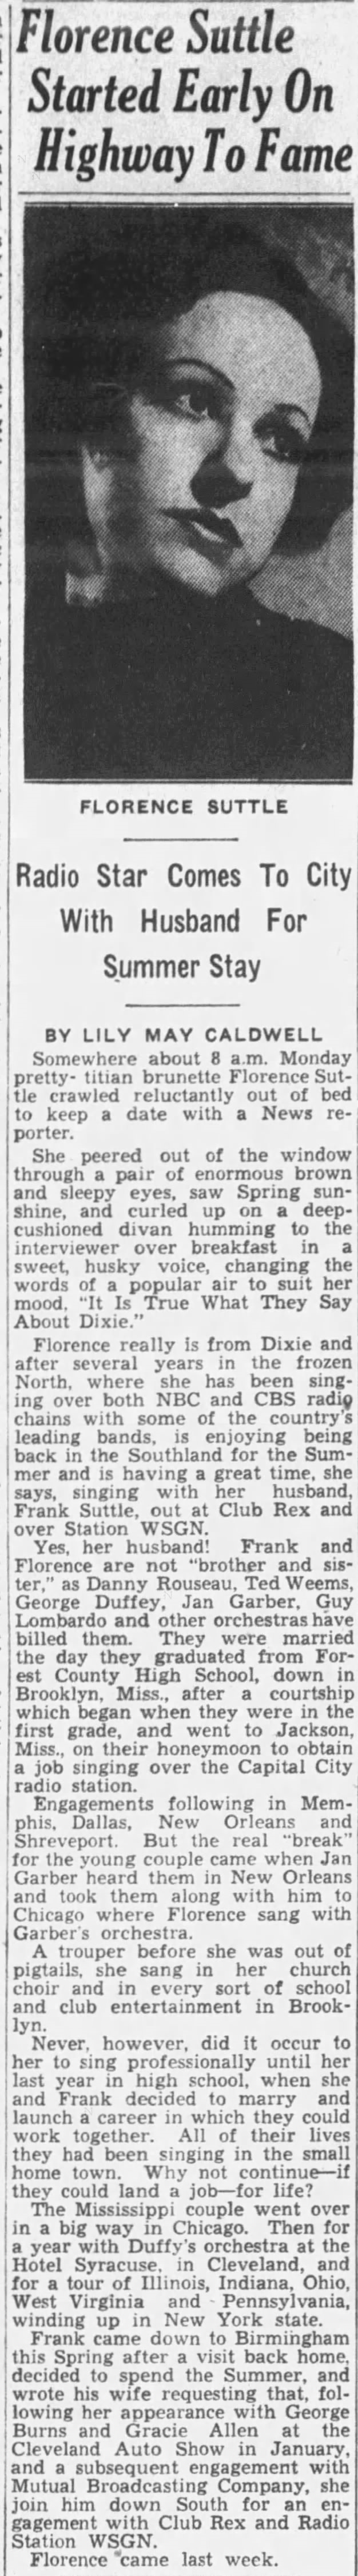 The Florence Suttle Interview 1936